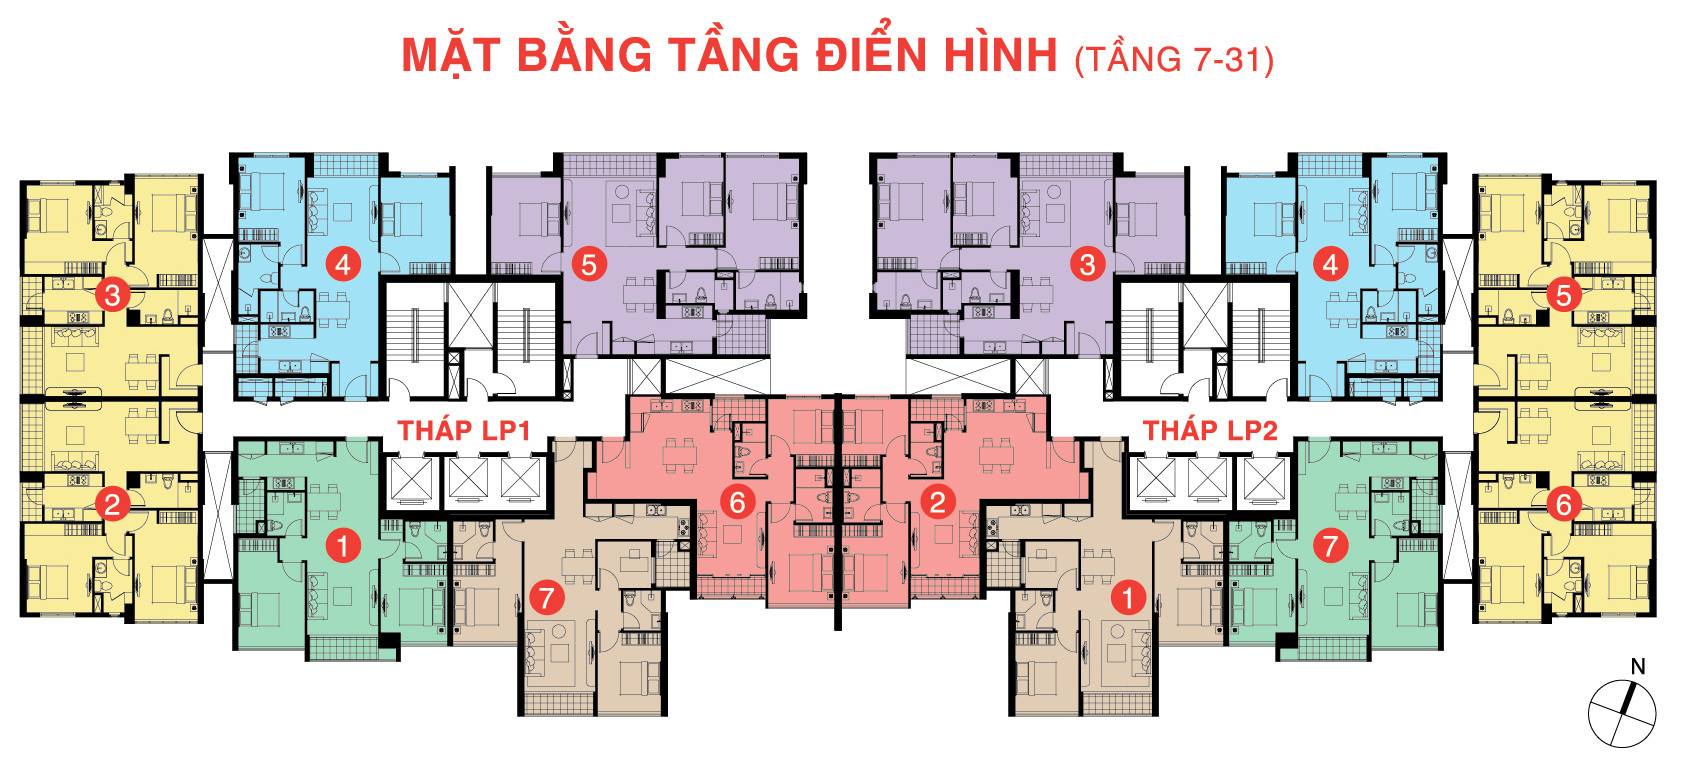 Mặt bằng tầng Lucky Palace